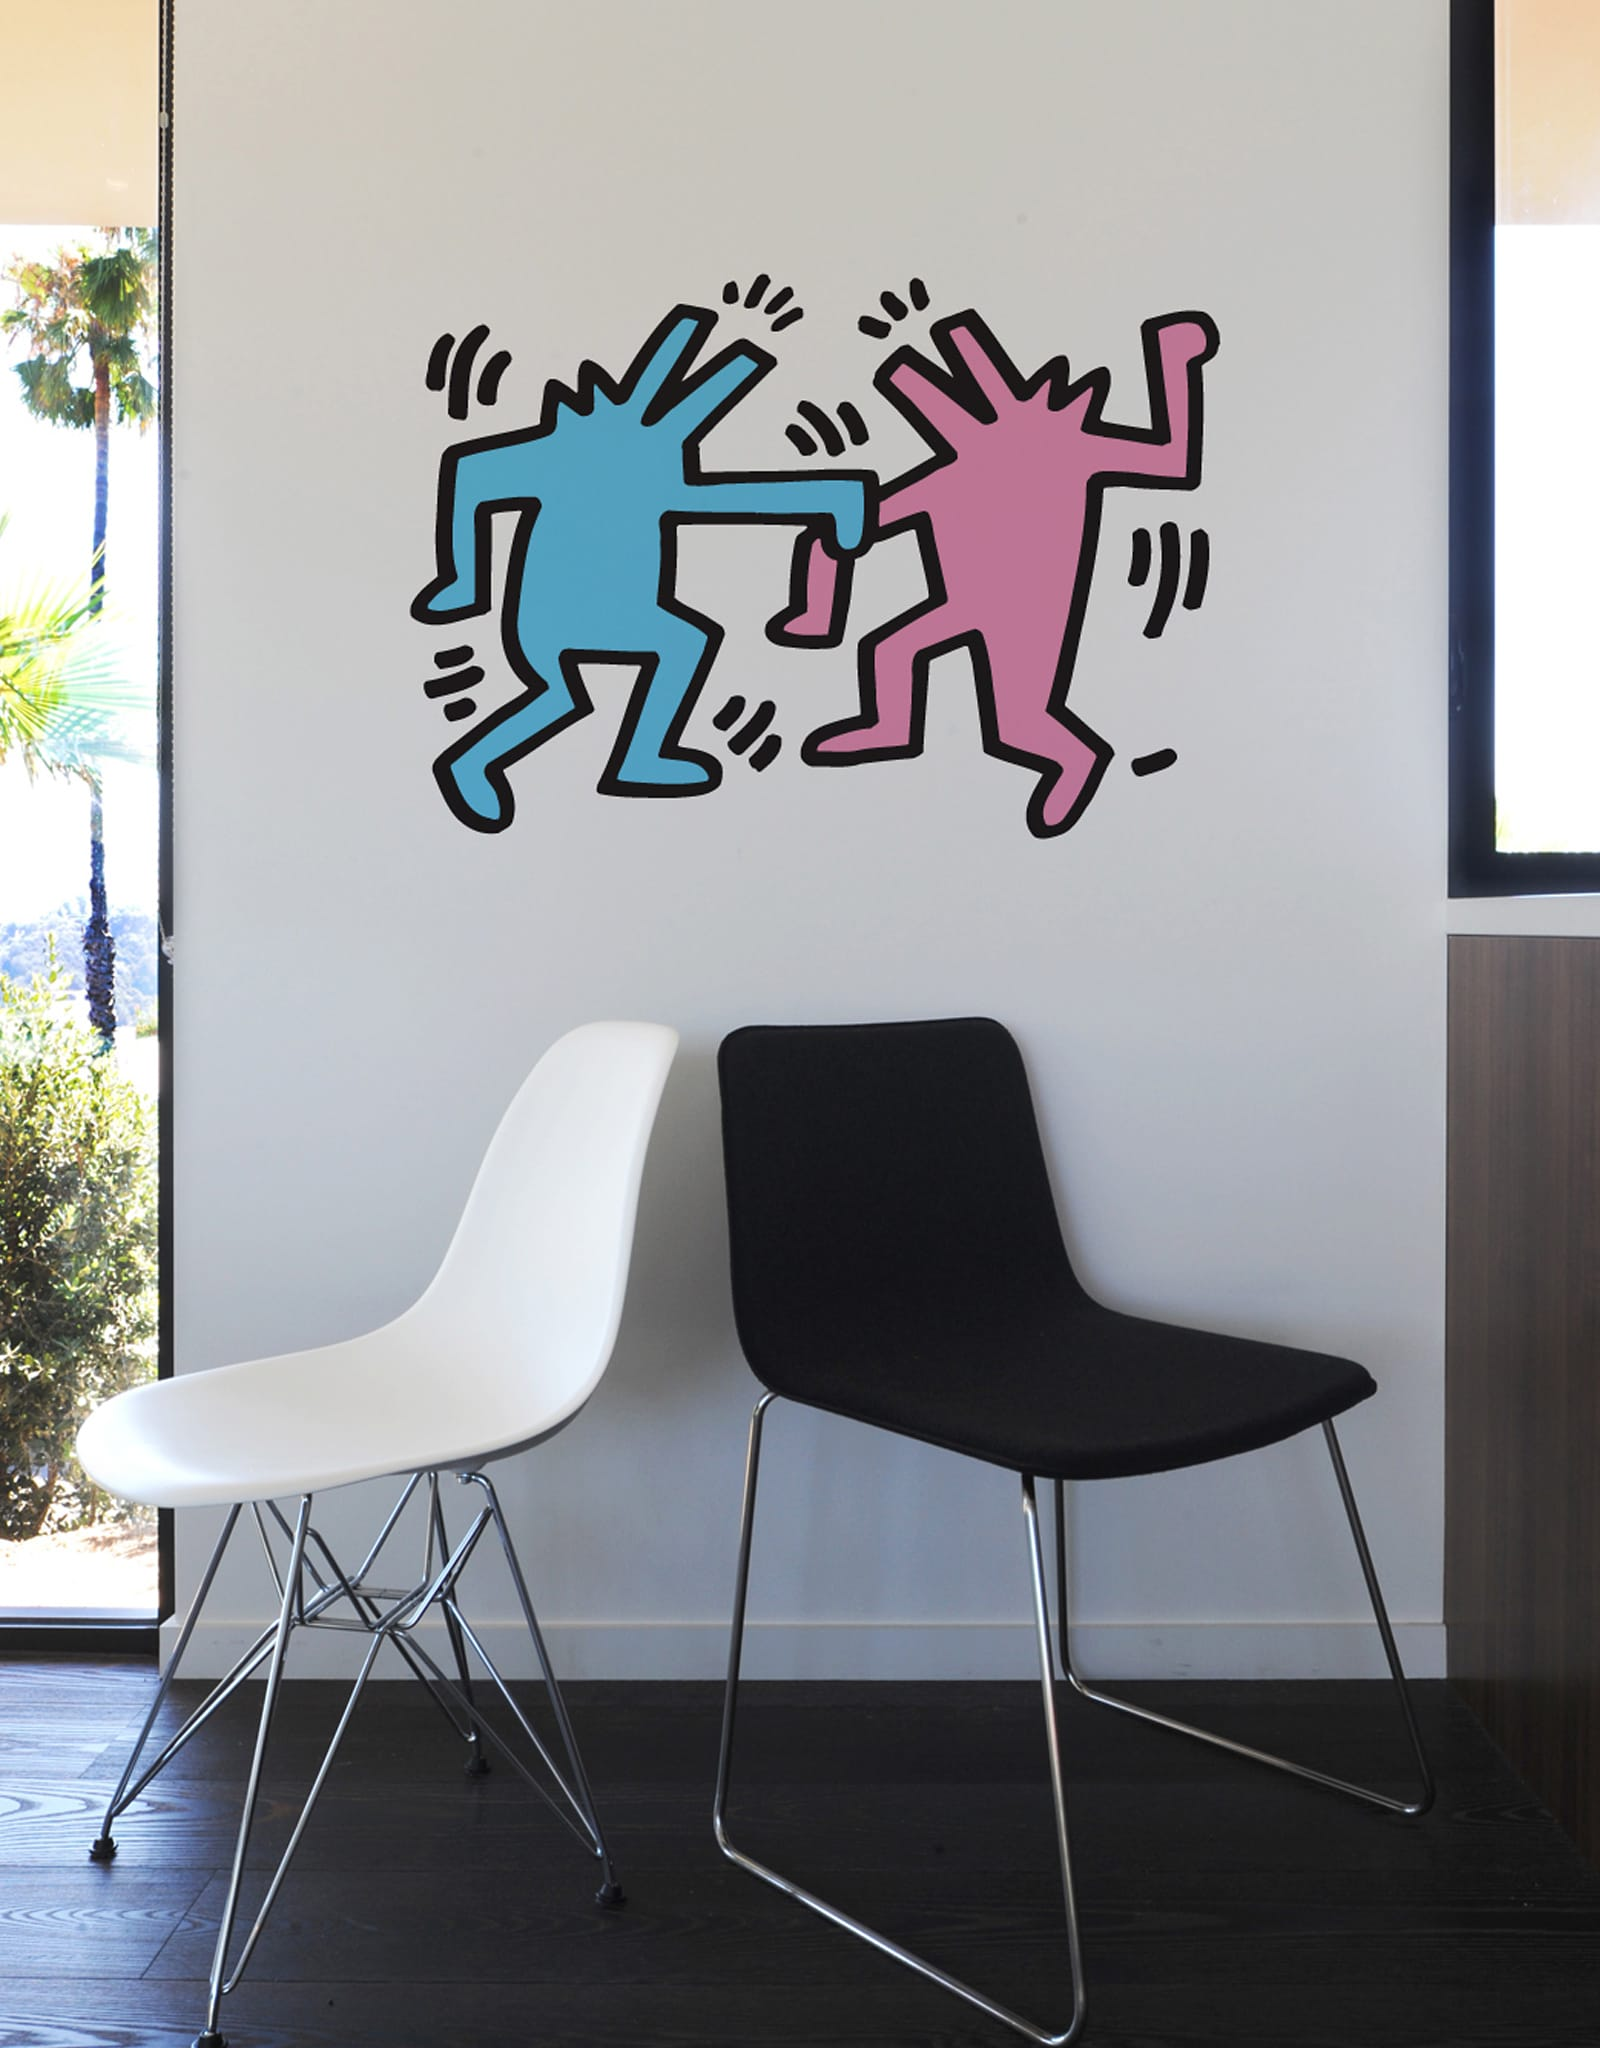 Blik self adhesive removable wall decals and artful home goods blik buy now dancing dogs gumiabroncs Image collections